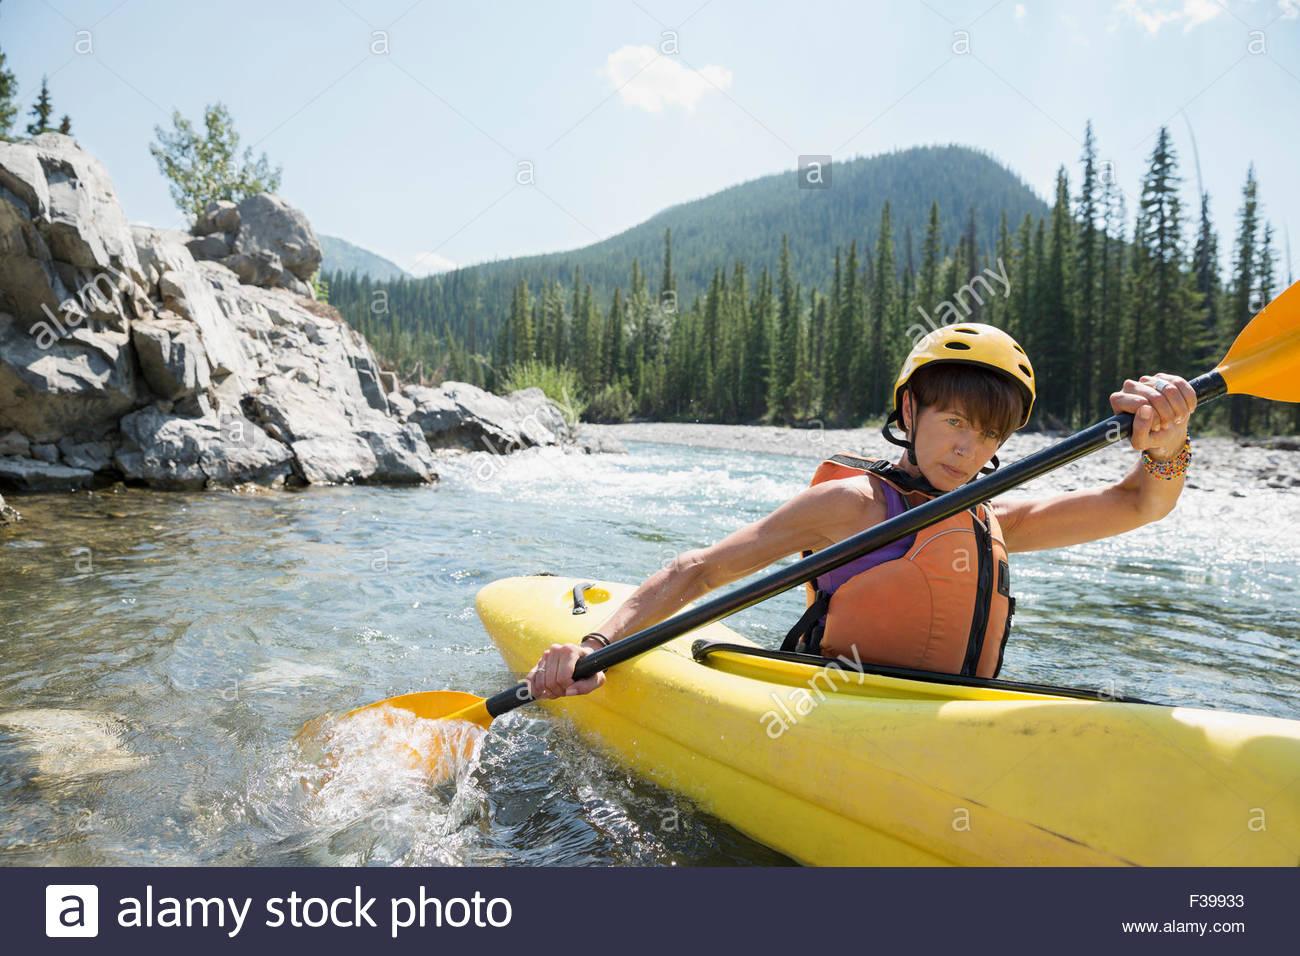 Determined woman kayaking in river - Stock Image